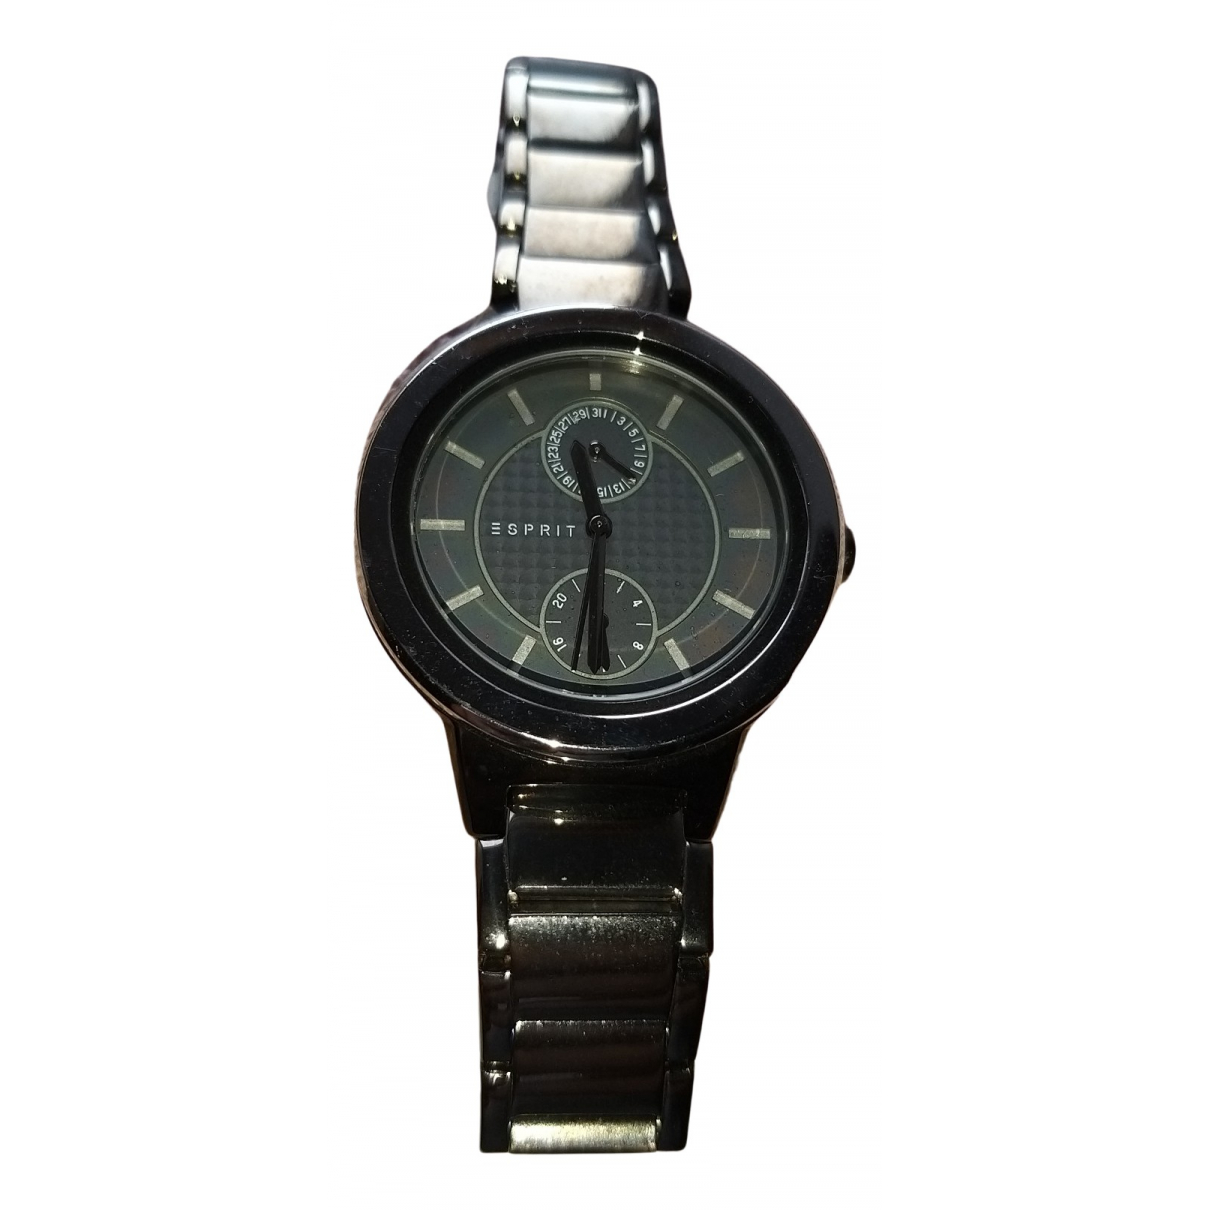 Esprit N Silver Steel watch for Women N